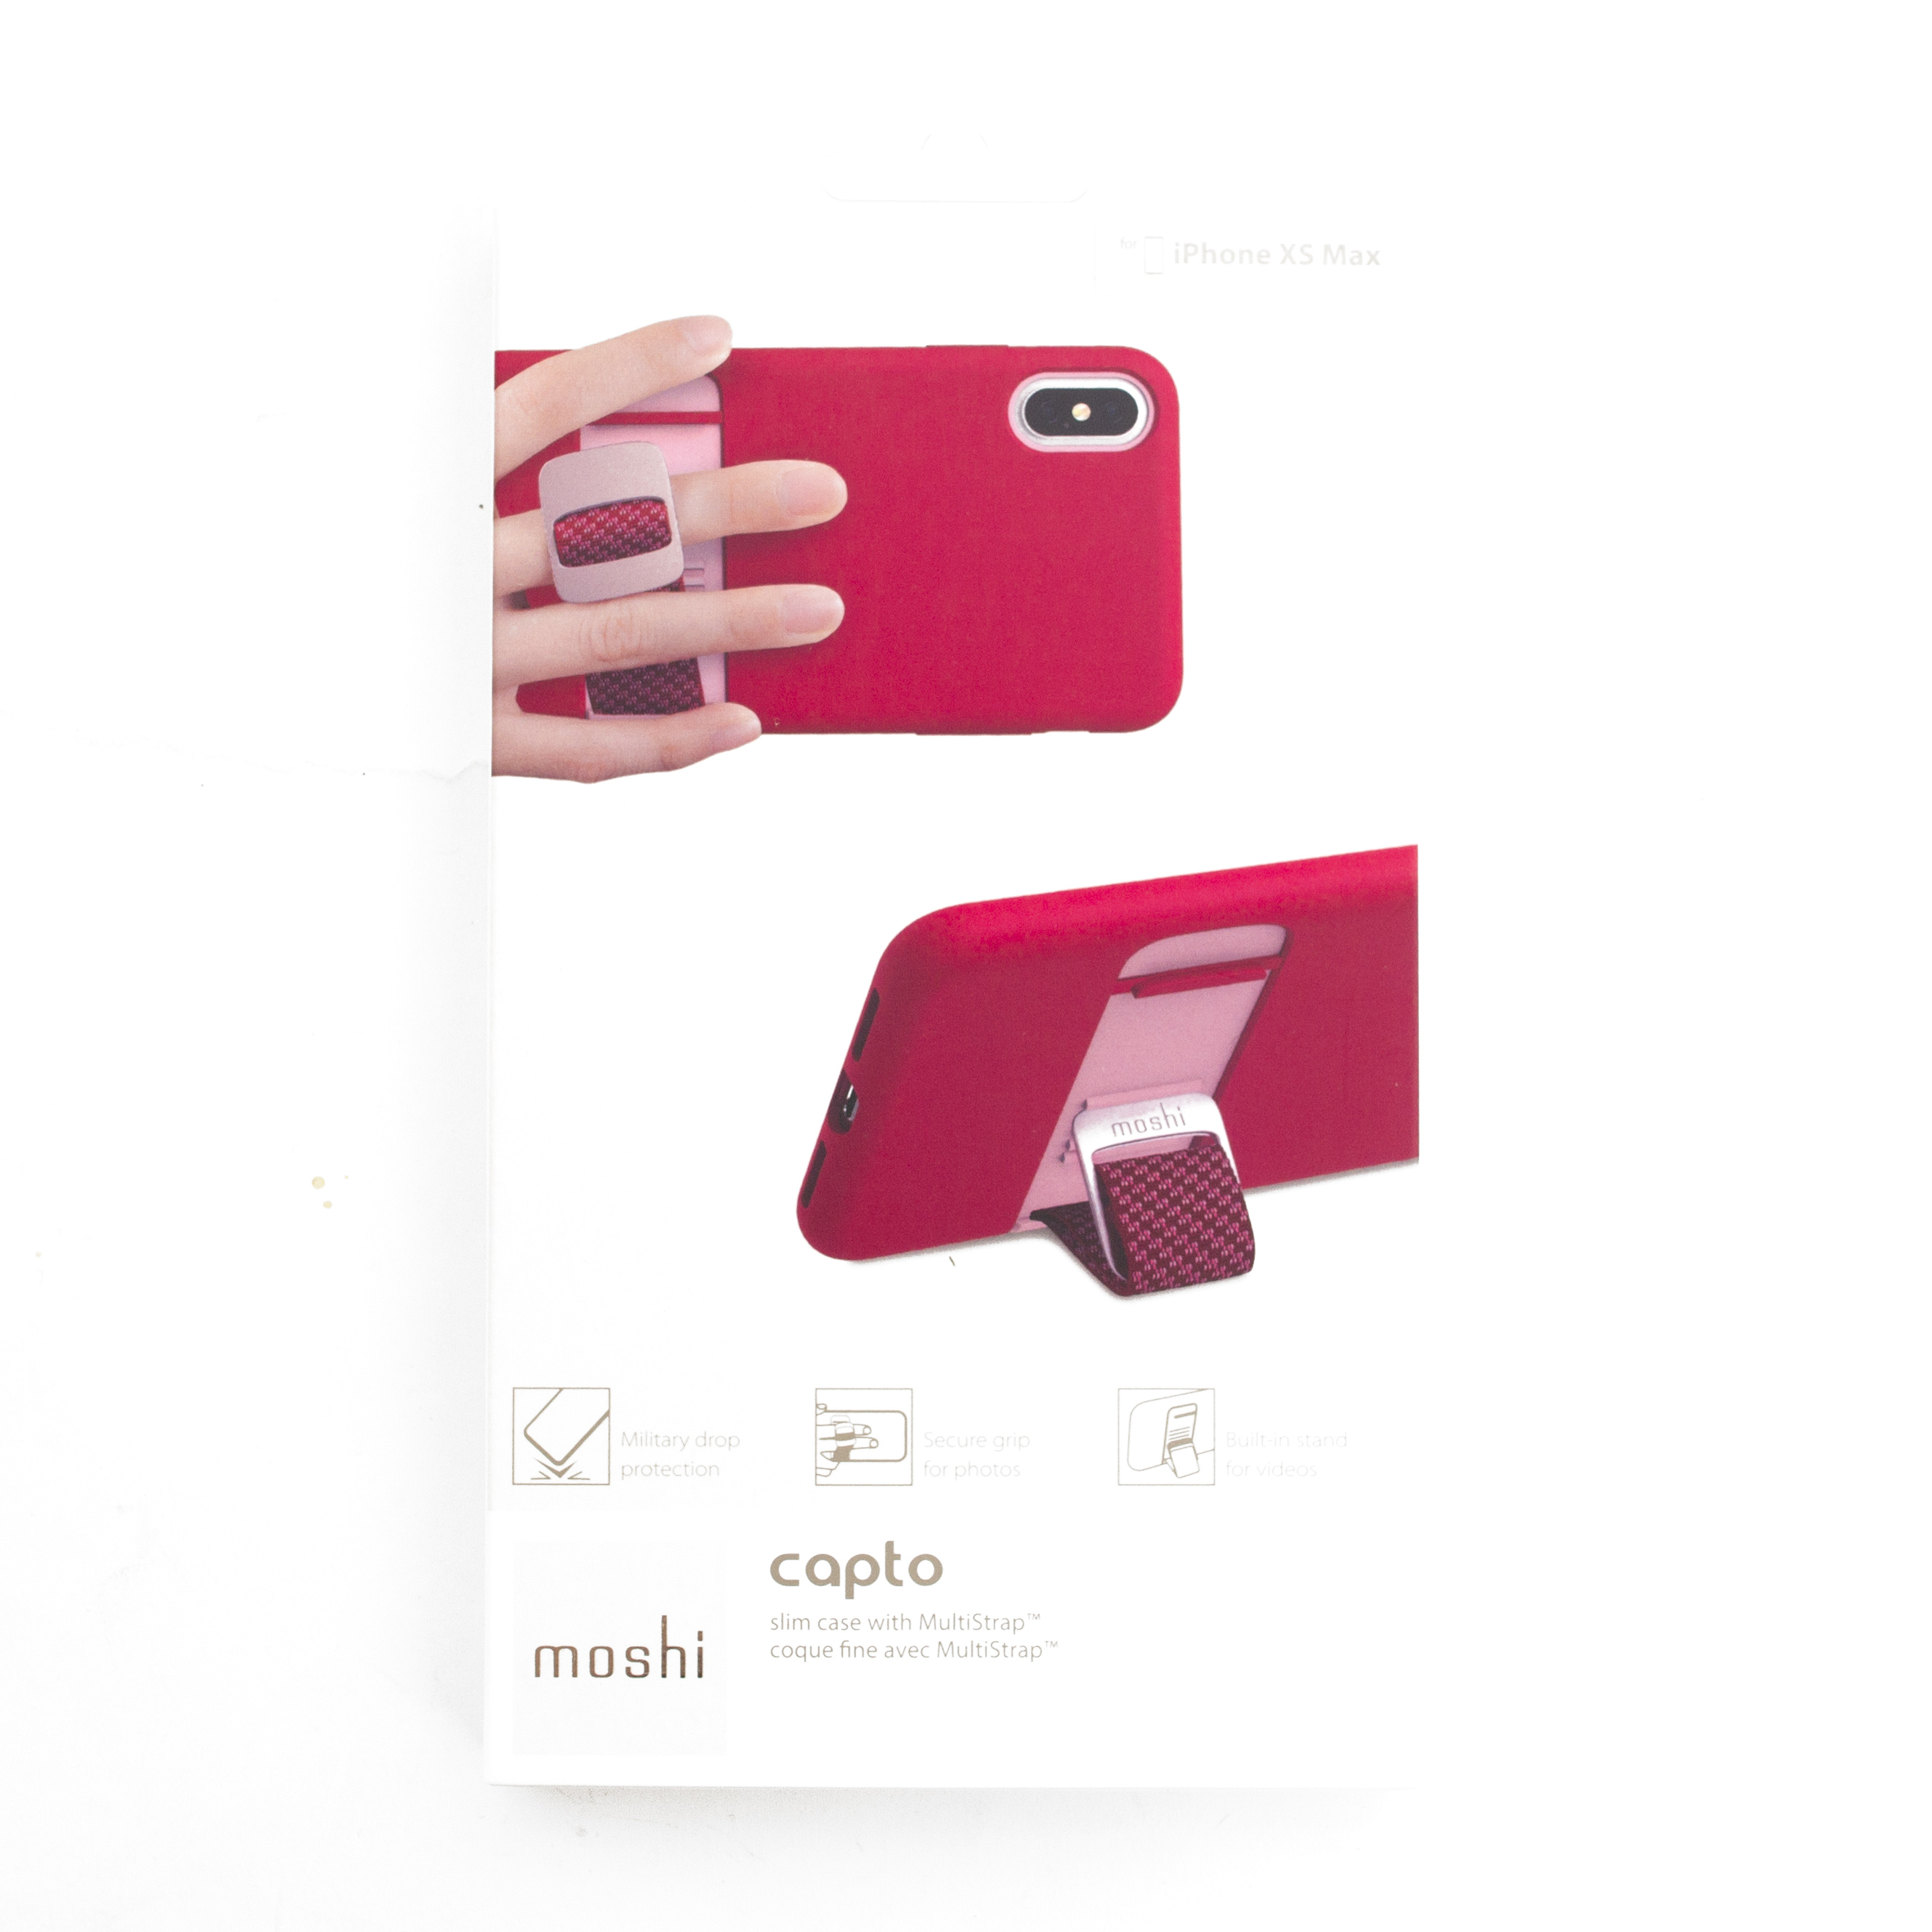 Moshi, Capto, Case, iPhone, Slim